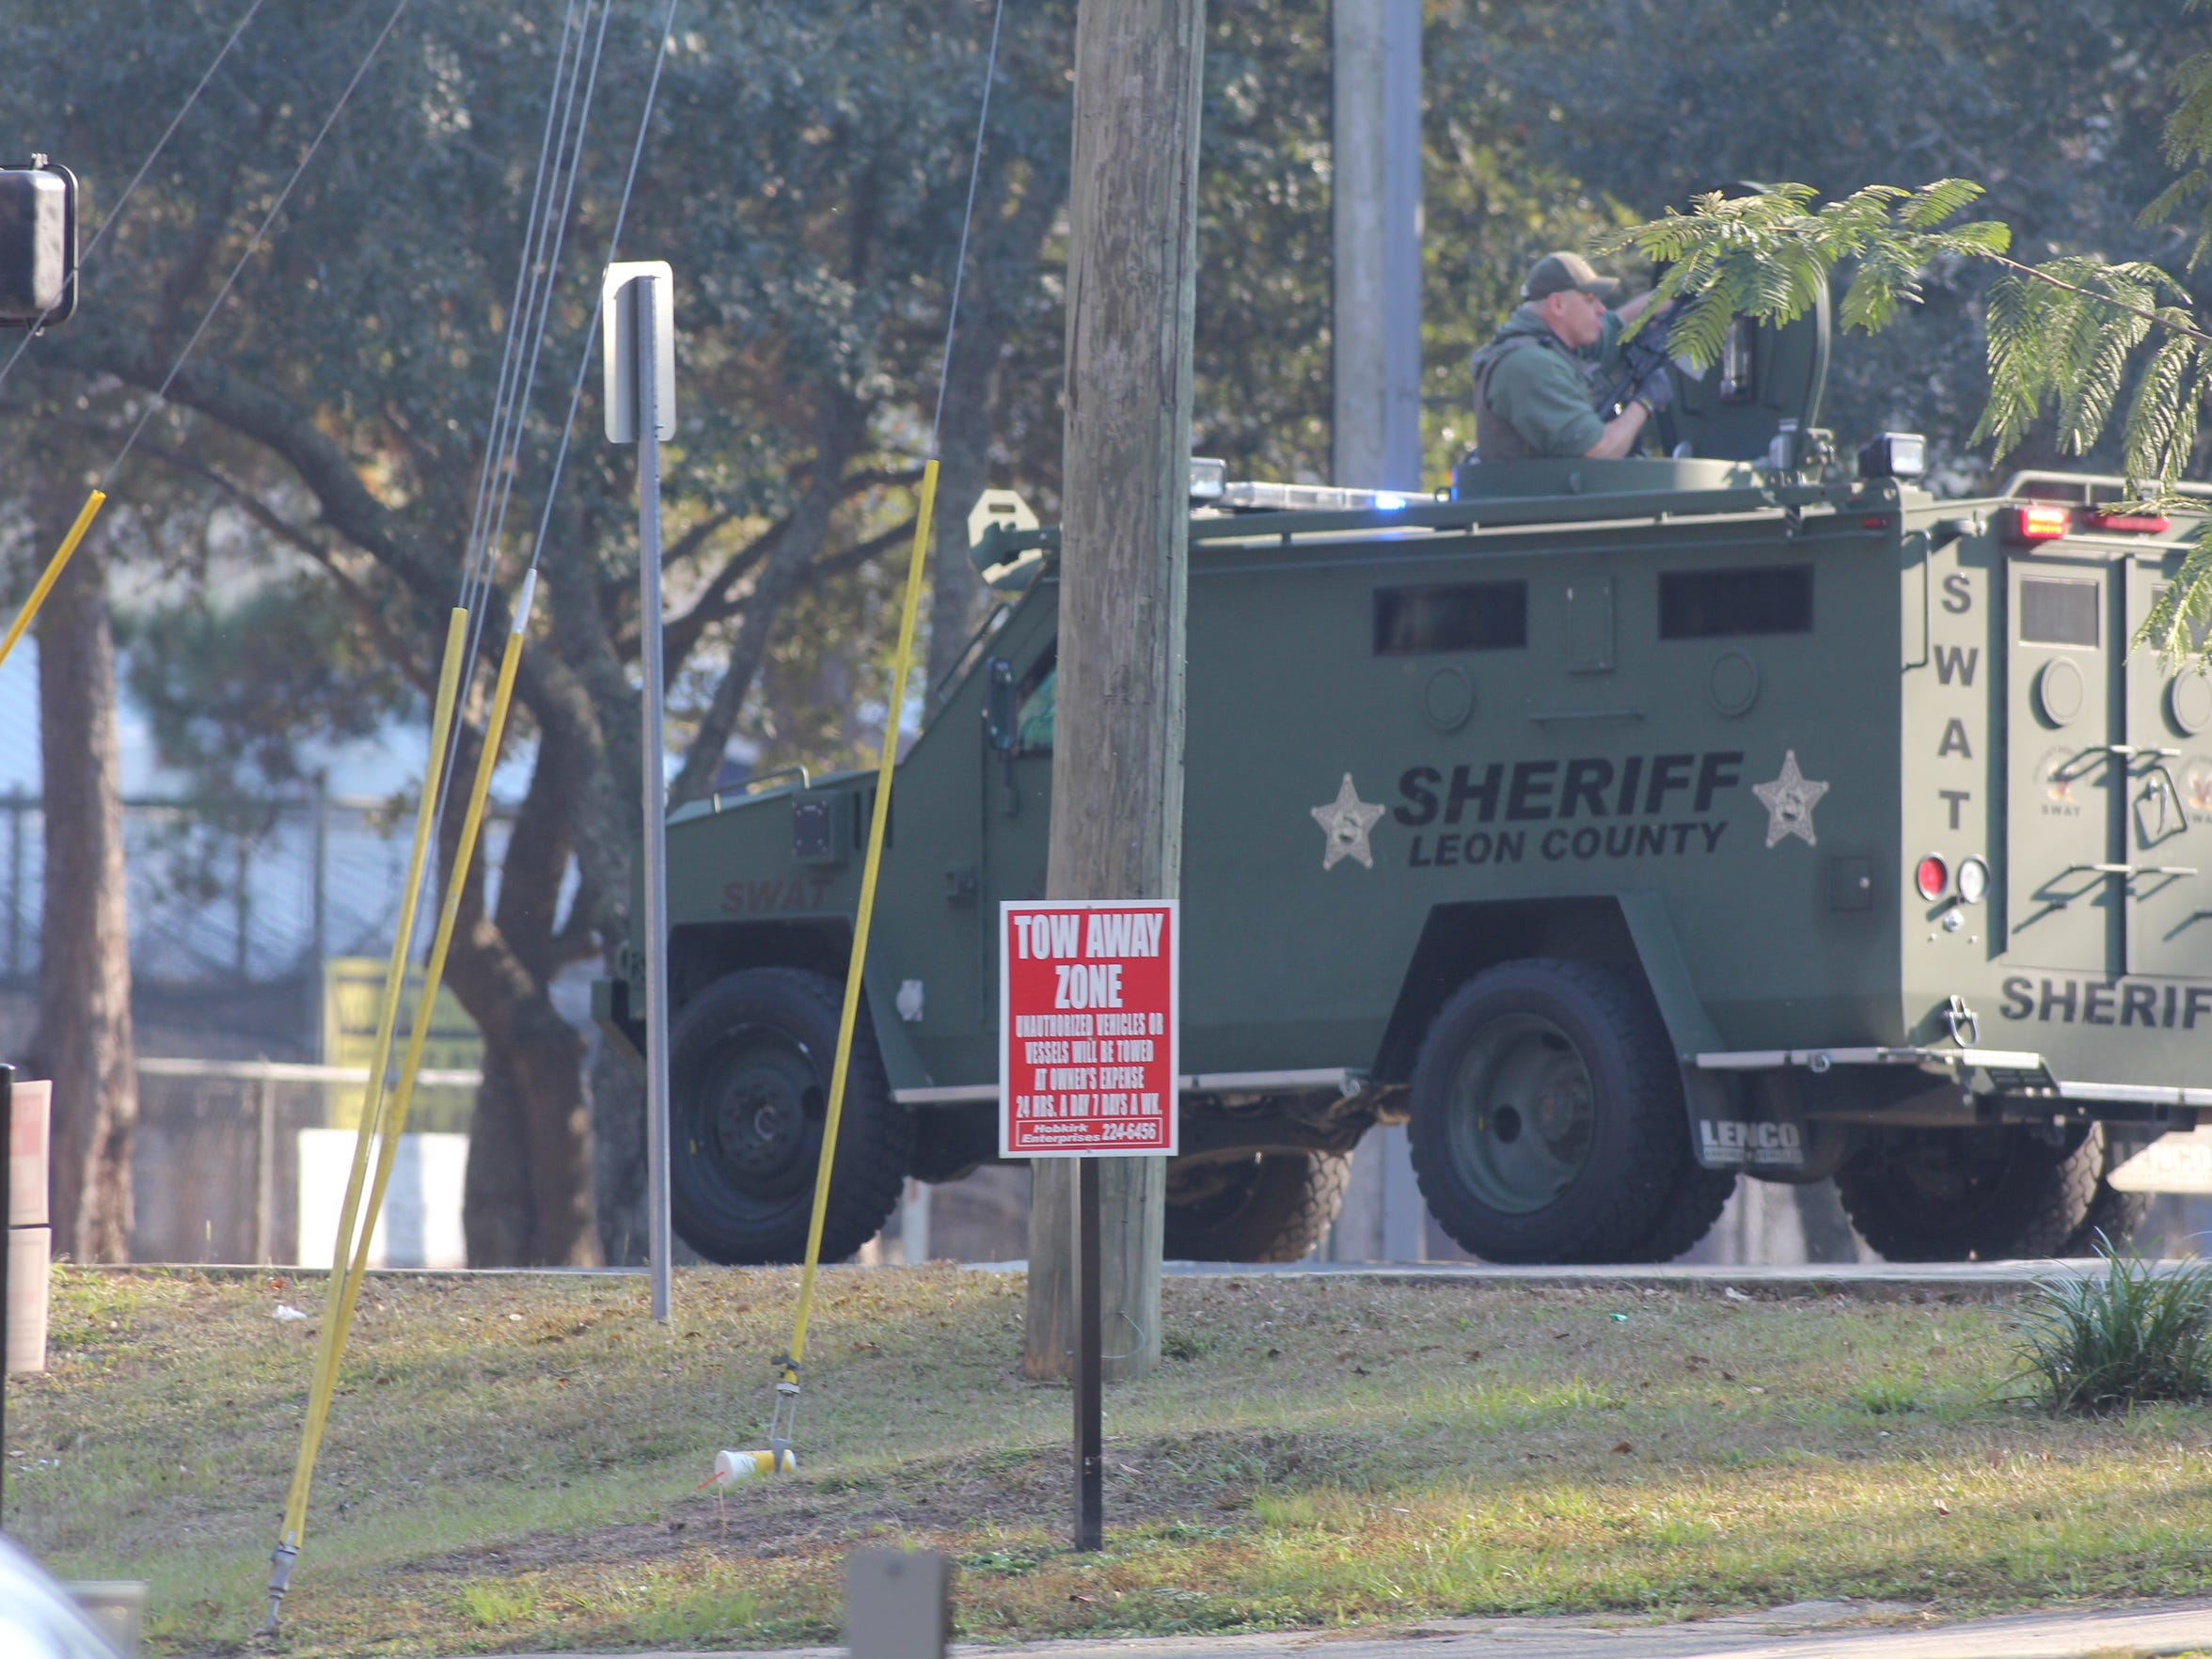 An armored truck with the Leon County Sheriff's Office